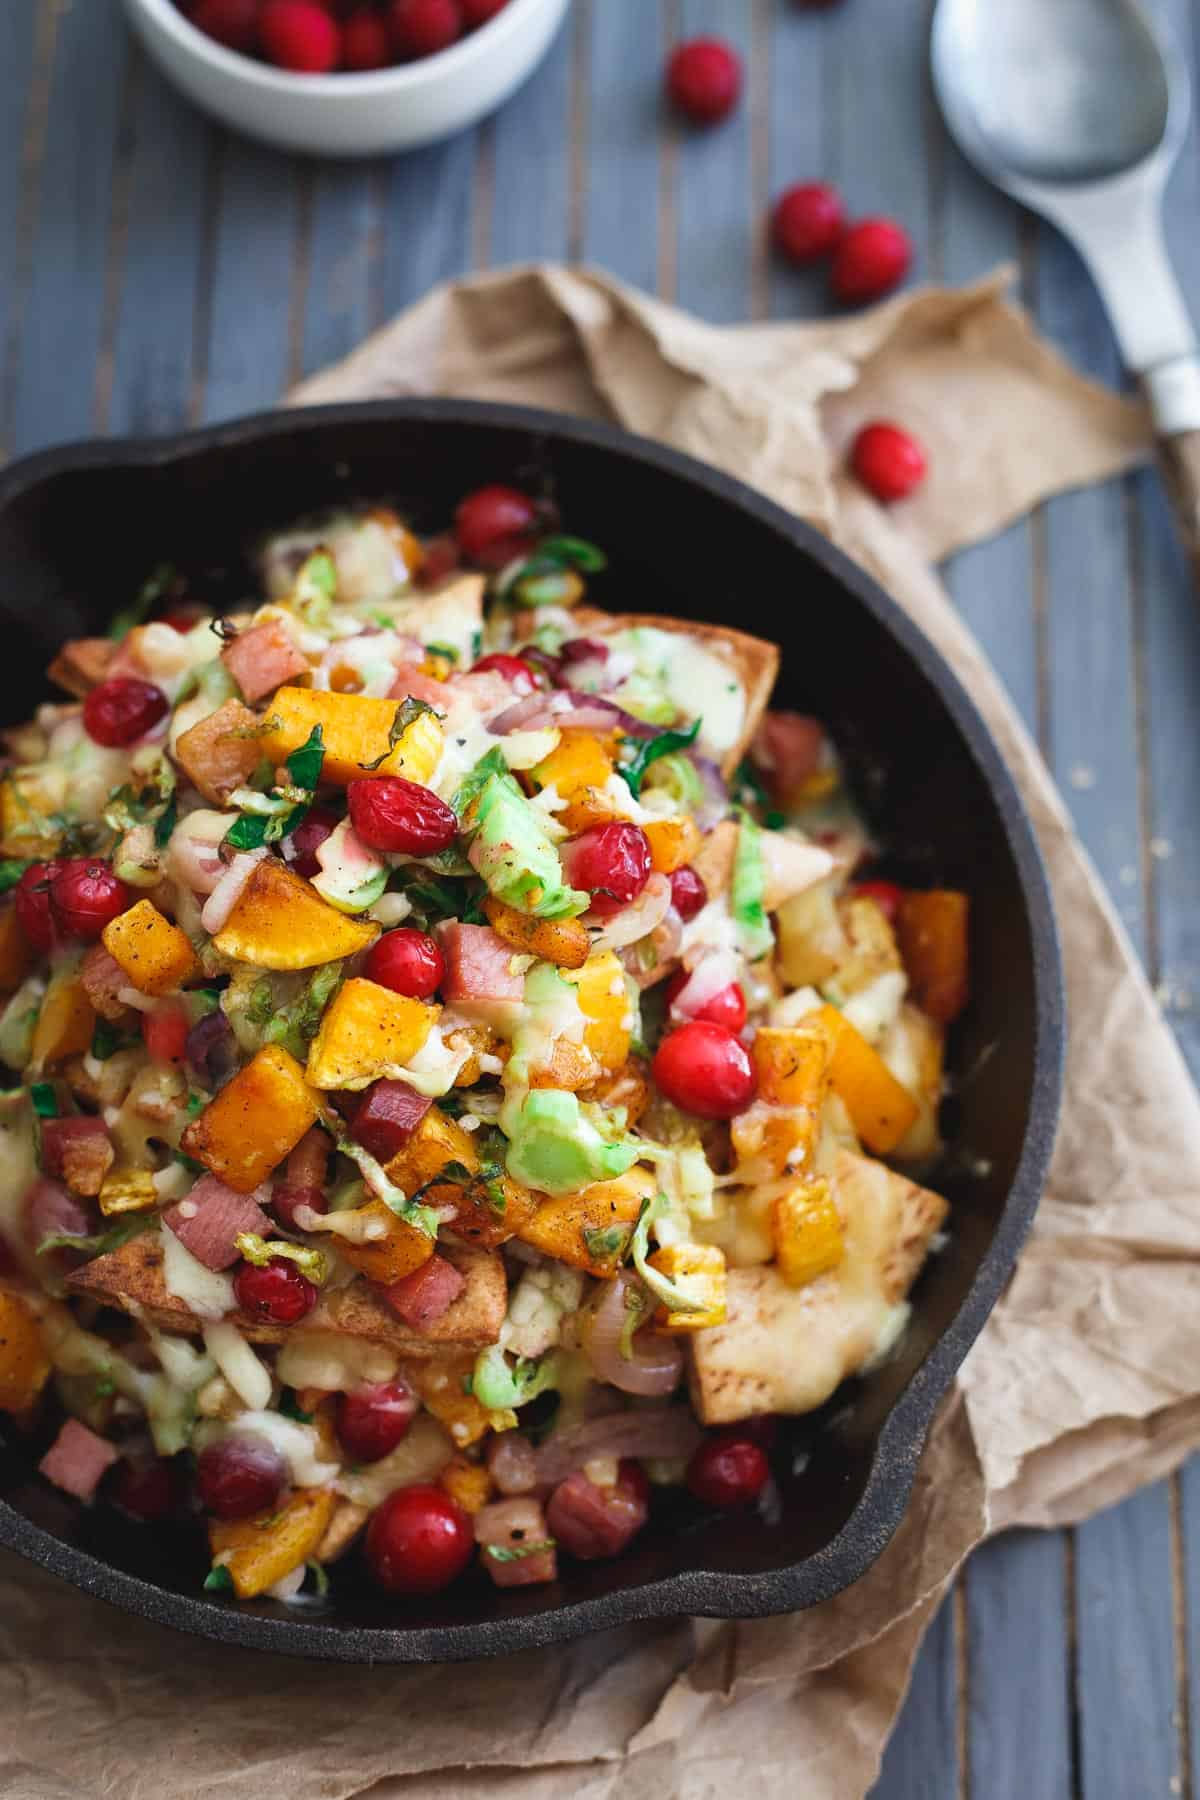 These butternut squash pita nachos bring a fall twist to the table packed with brussels sprouts, cranberries, pancetta and caramelized onions.